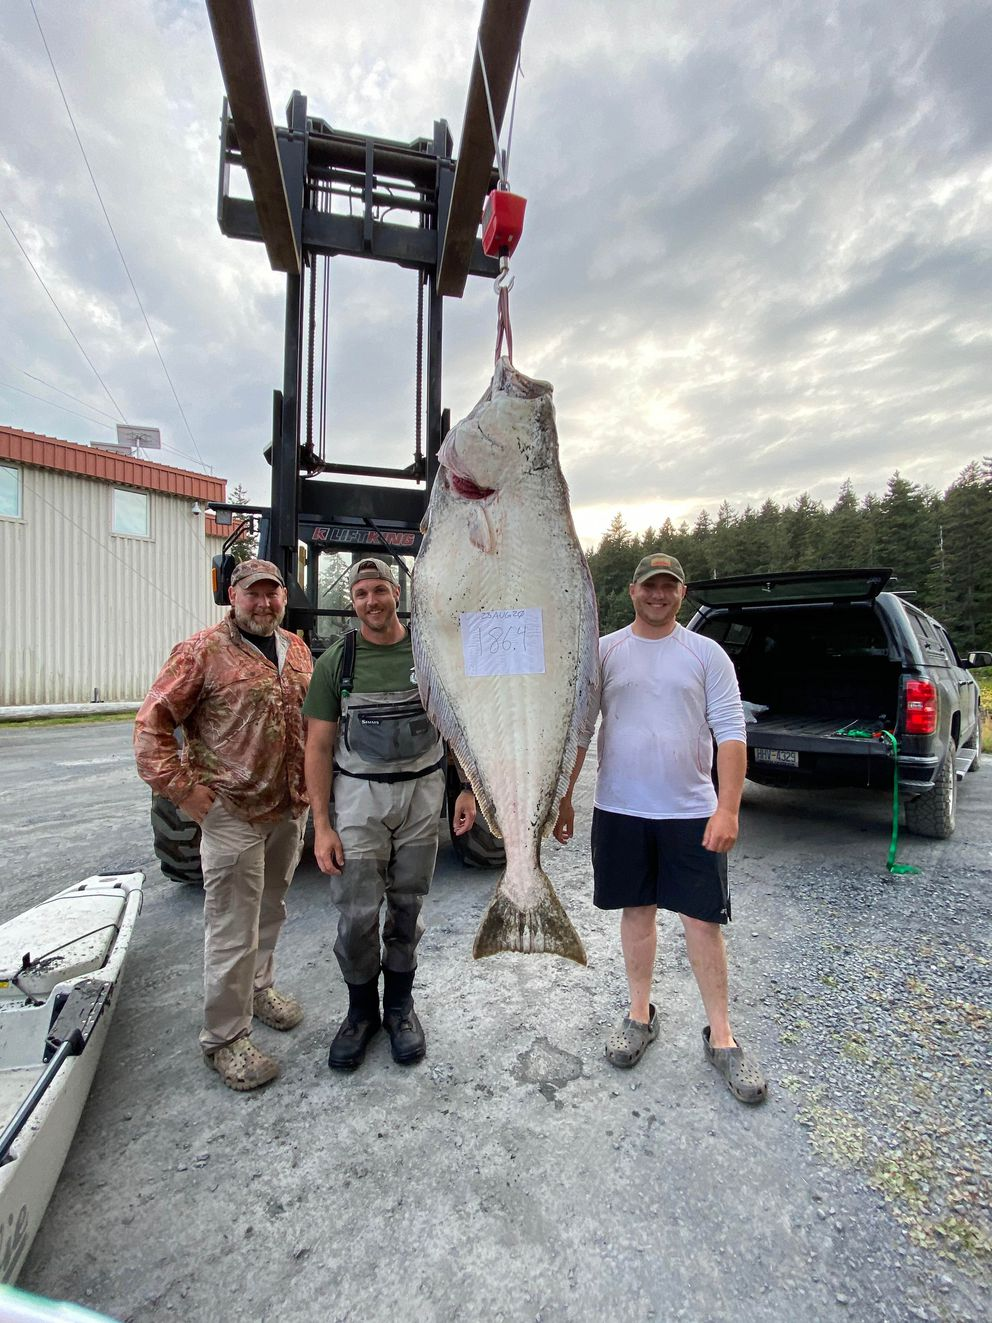 From left, Jeremiah Ericson, Jay Hicks and Jeff Woods stand with the 186.4-pound halibut Hicks landed while fishing from a kayak in Kodiak. (Photo by Sabrina Hicks)